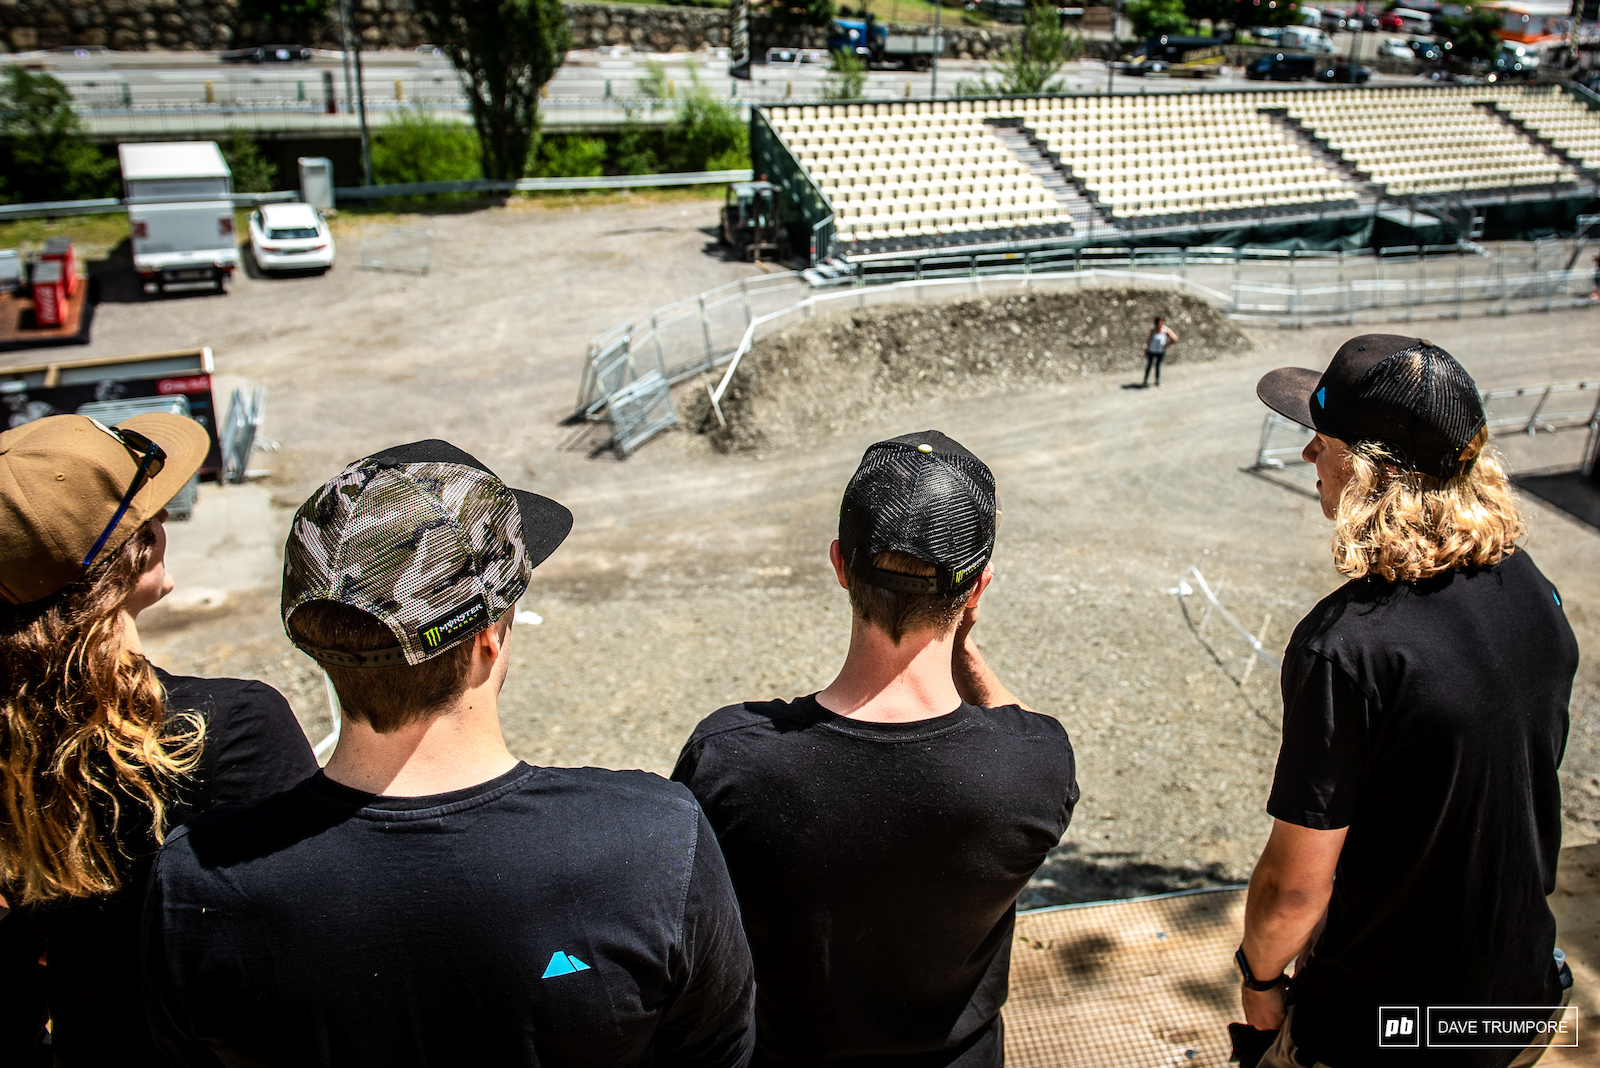 Troy Brosnan Mark Wallace Kye amp Sian A Hern all having a look at the final to nearly flat and the finish line corner. Rumor has it the corners just above this will be tightened up a bit to slow riders down a bit so they can actually stay on the sloped landing.